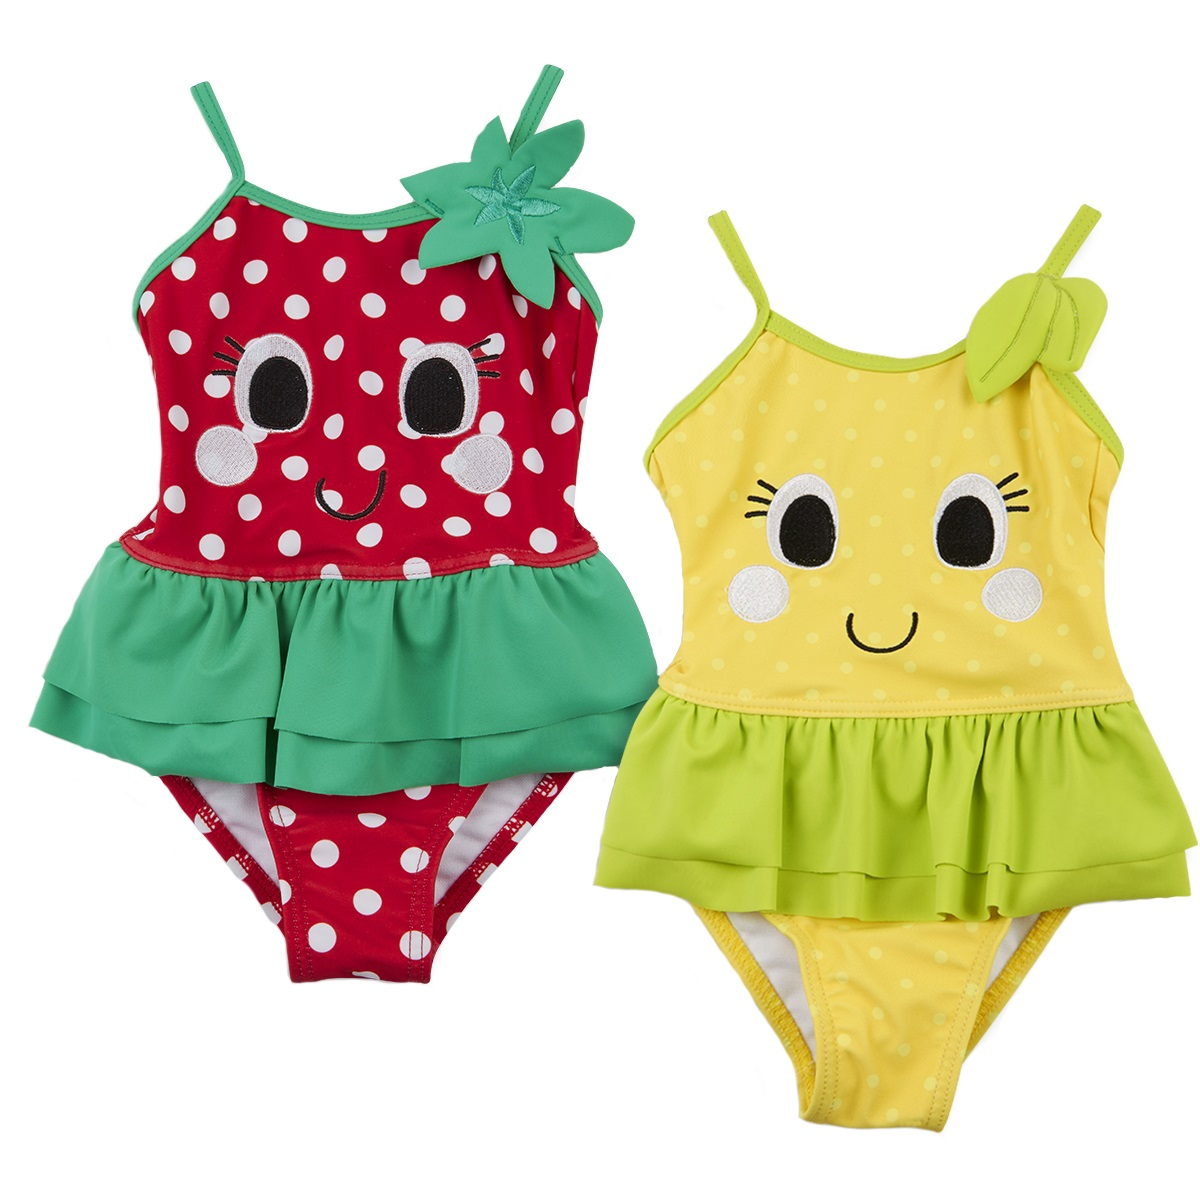 Little Toggs is Australian owned and offers beautifully designed swimwear, accessories, and the award winning Happy Nappy all made from the highest sun.